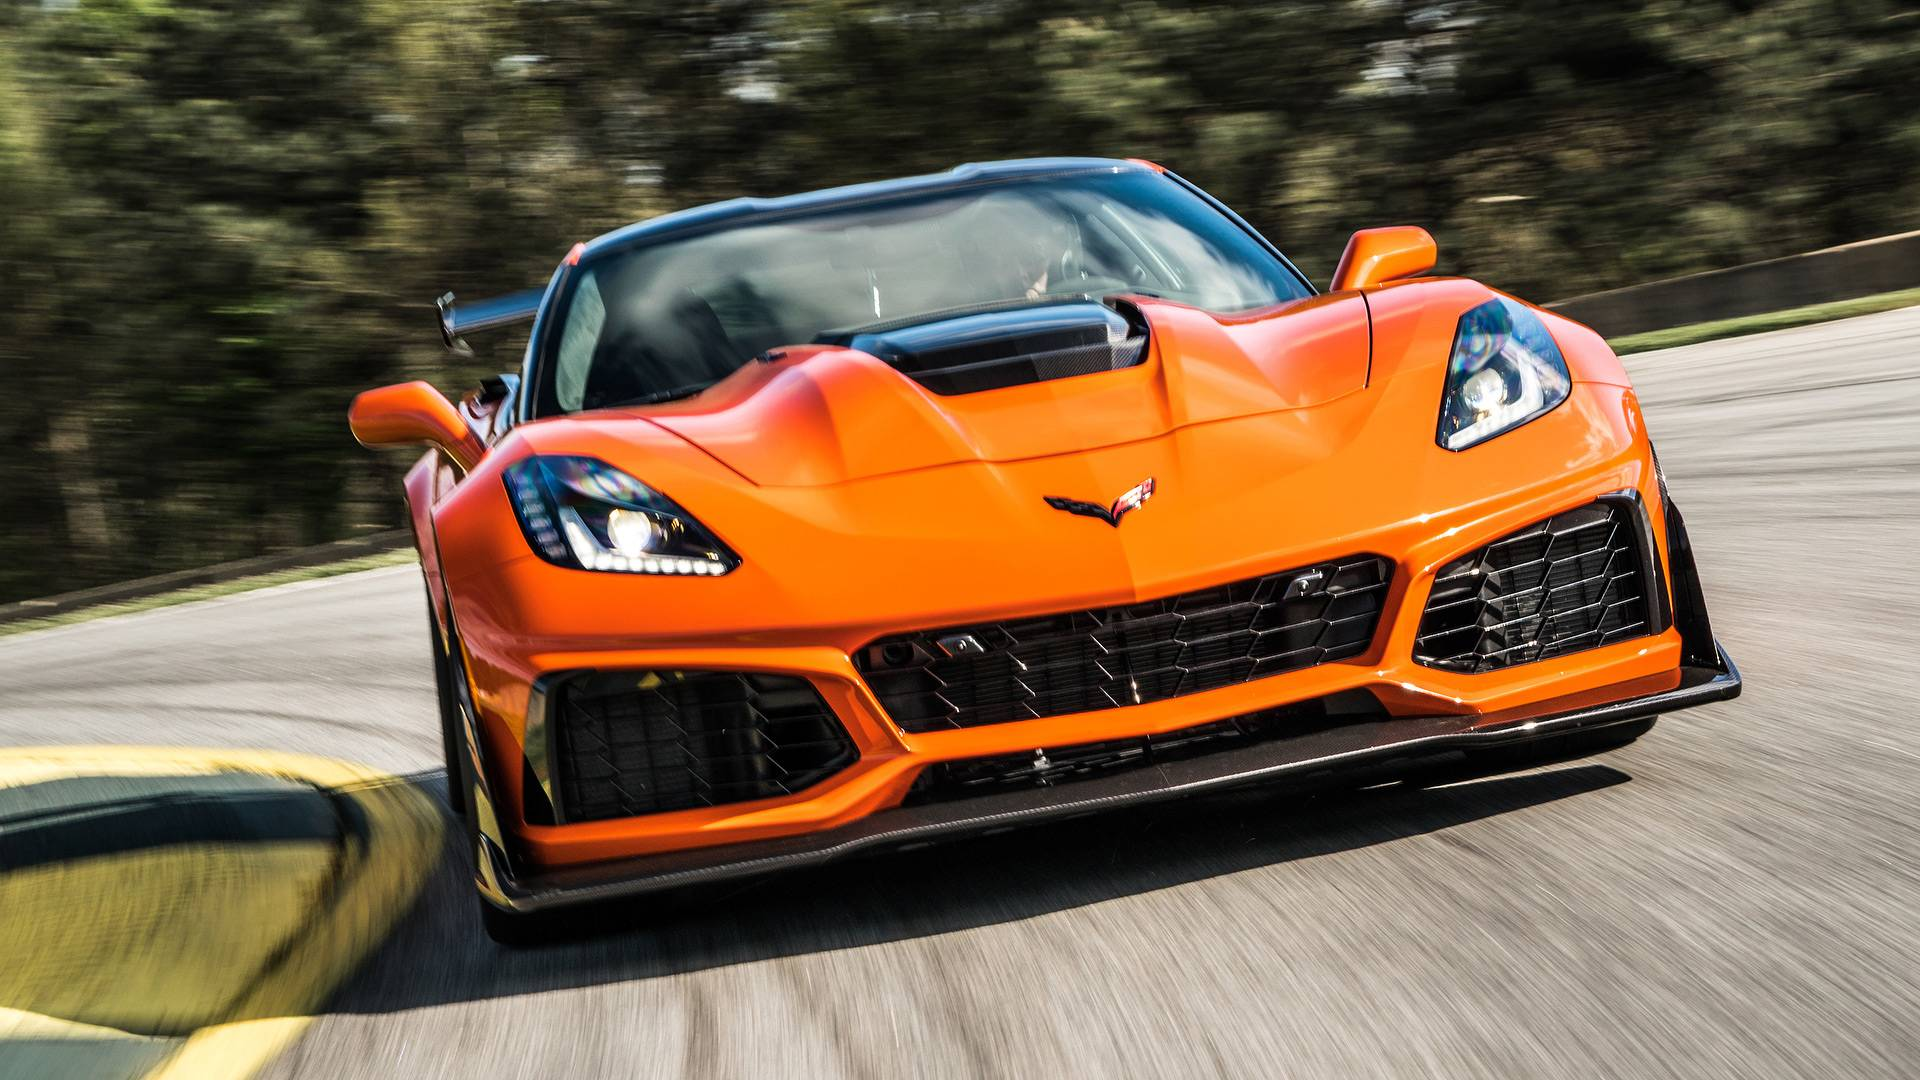 Corvette C7 Zr1 >> Confirmed C7 Corvette Zr1 Didn T Beat 7 Minute Ring Lap Time